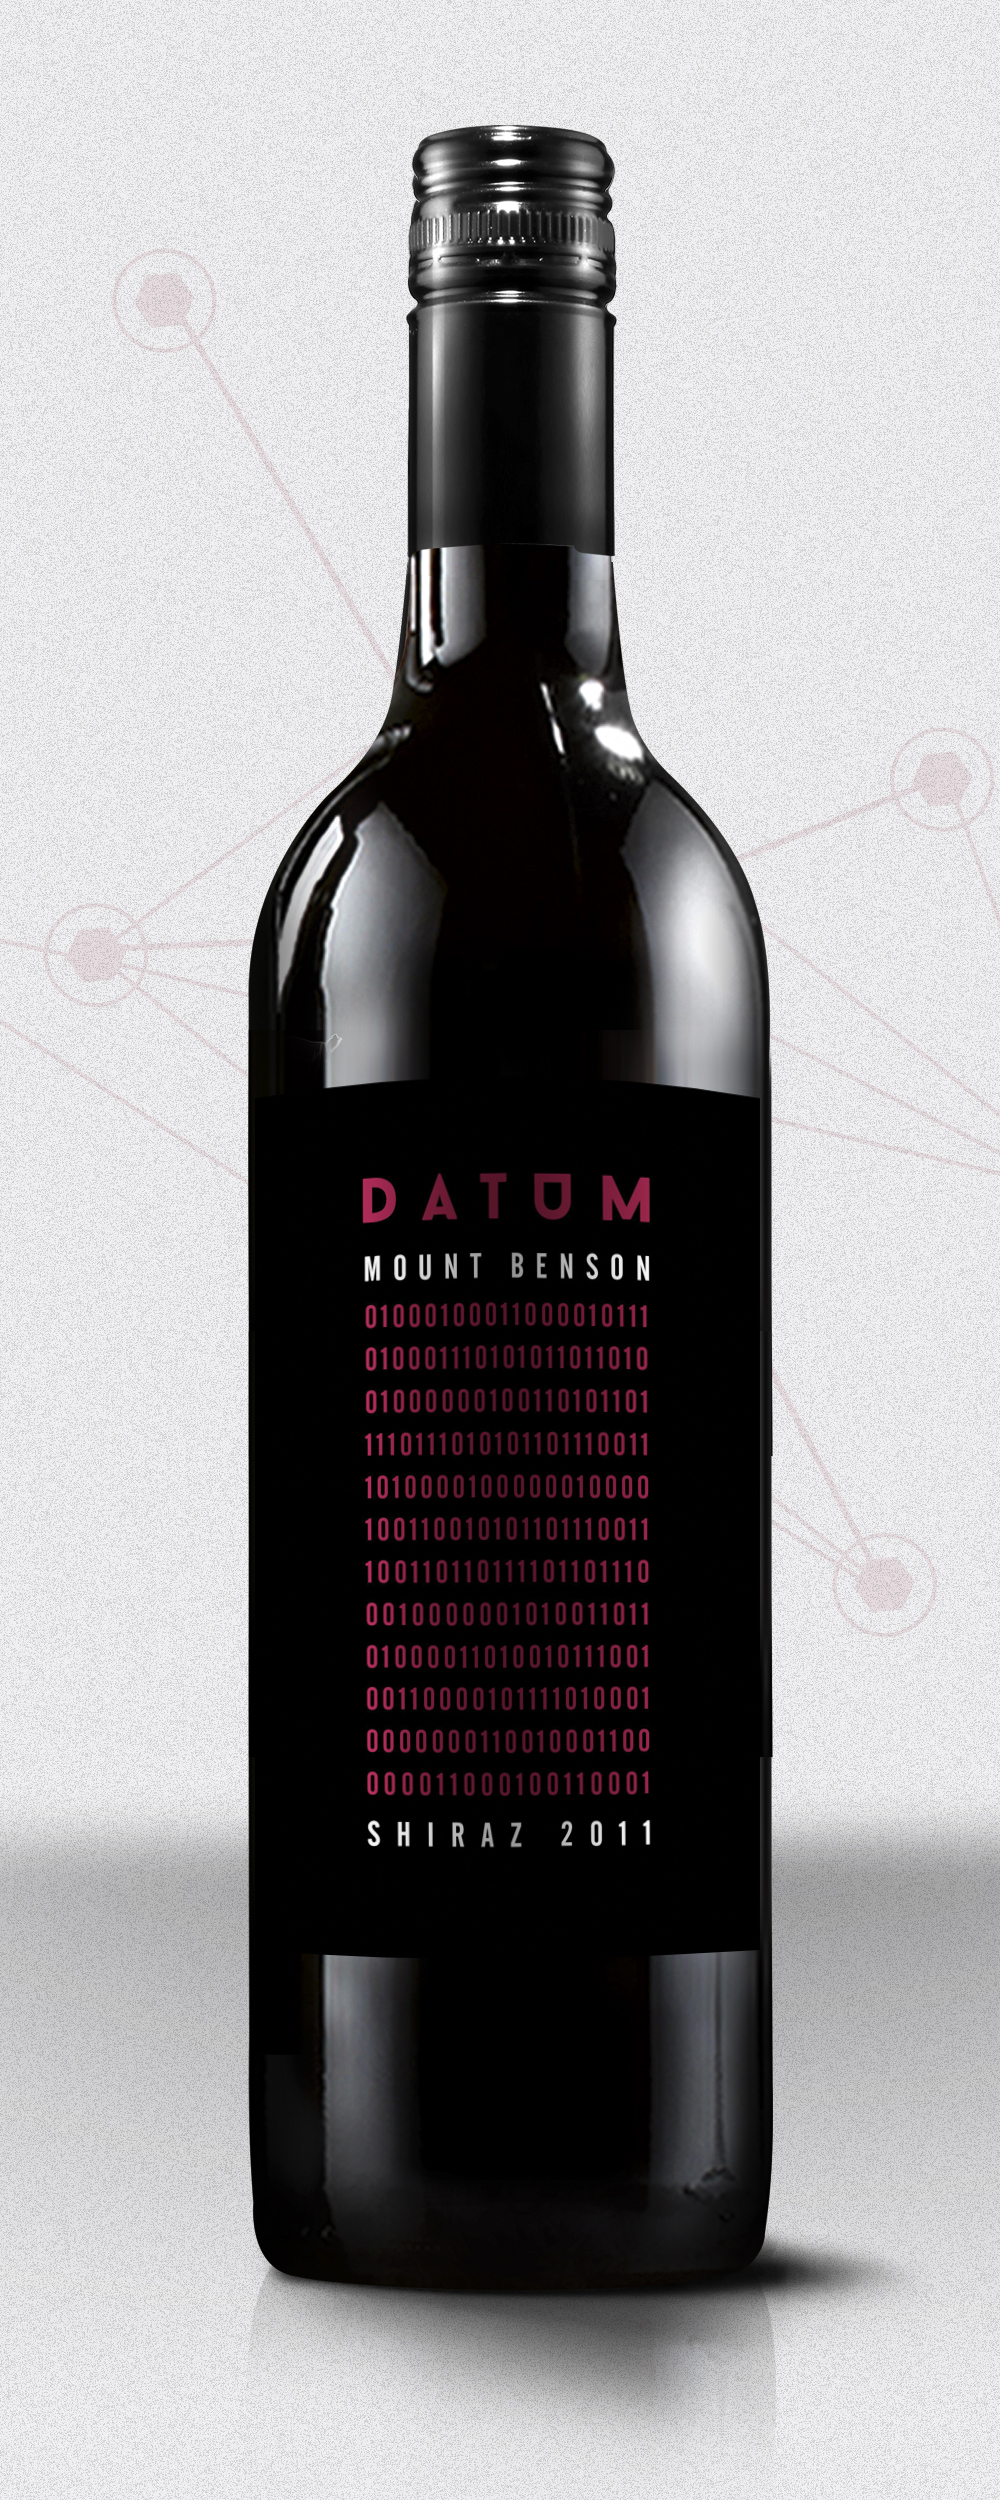 Datum_Shiraz_label_V2.jpg